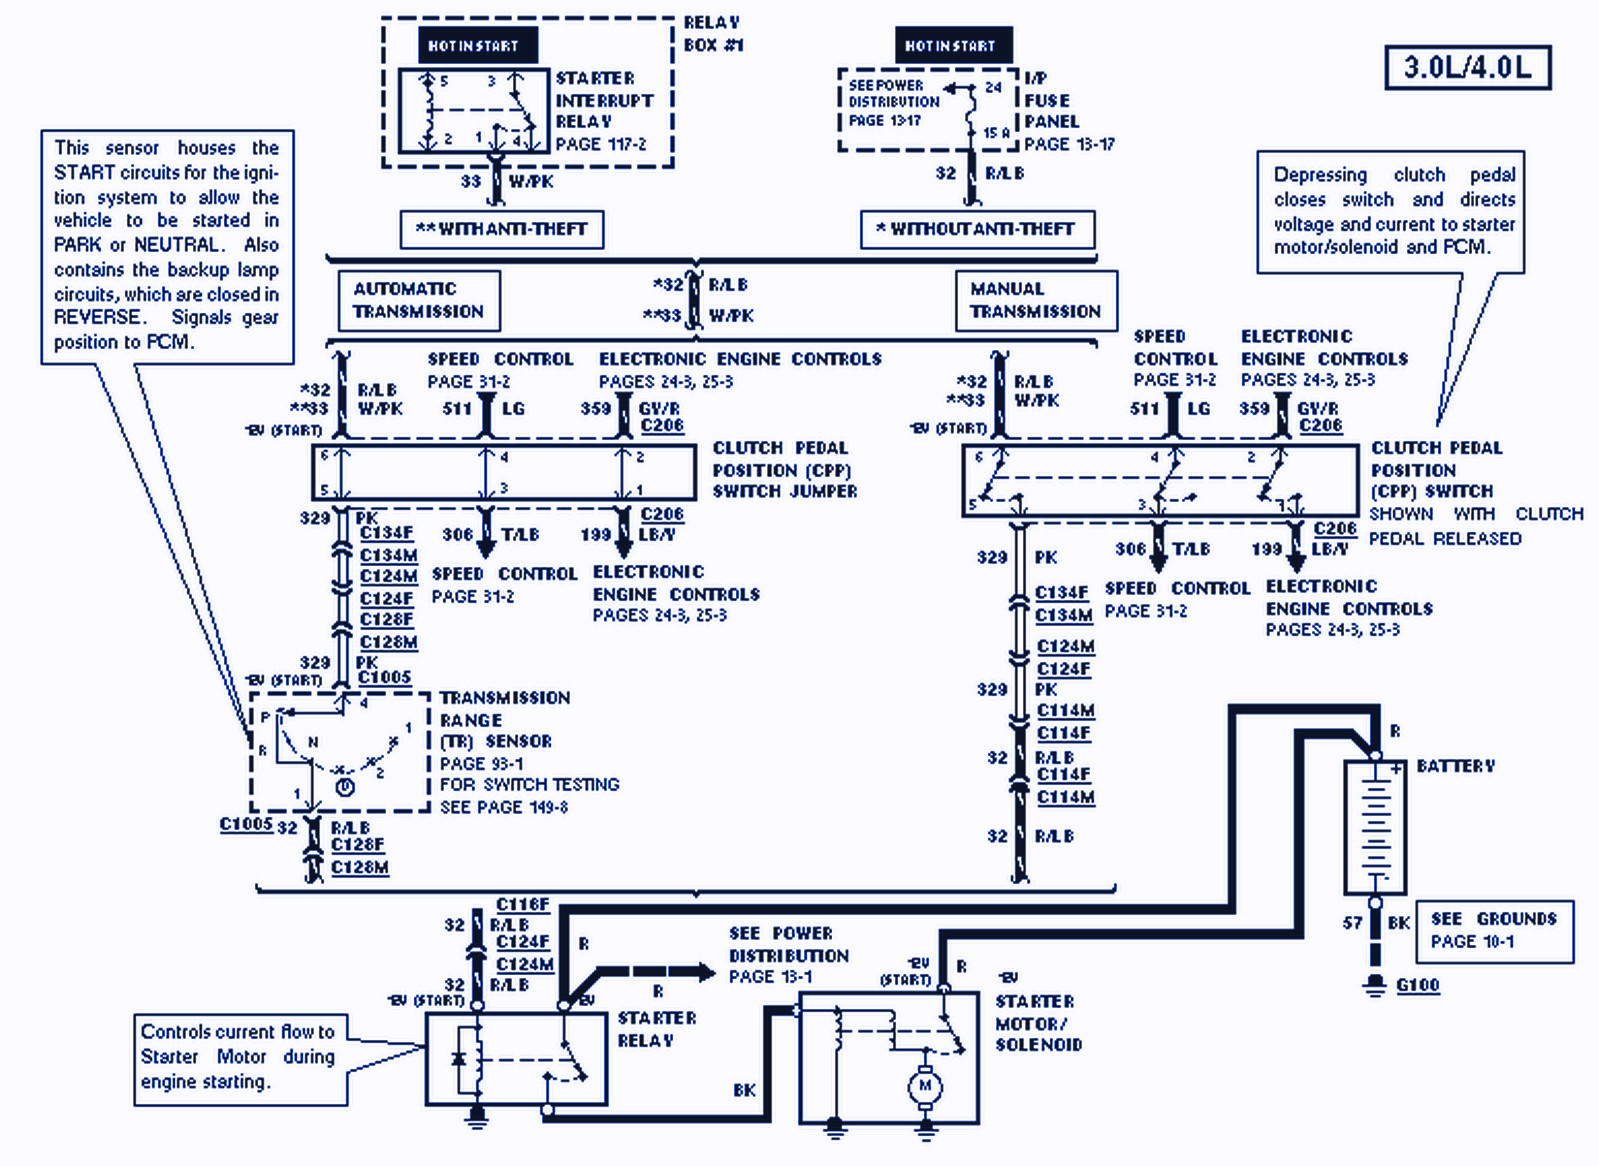 Wiring Diagram For 1995 Ford Ranger - Wiring Diagram Priv on 2002 silverado lights, 2002 silverado engine, 2002 silverado radio wiring diagram, 2002 silverado wiring harness, 2002 silverado 1500 wiring diagram, 2002 silverado fuel pump wiring, 2002 silverado fuse box diagram, 2002 silverado trailer wiring, 2002 silverado stereo wiring diagram,